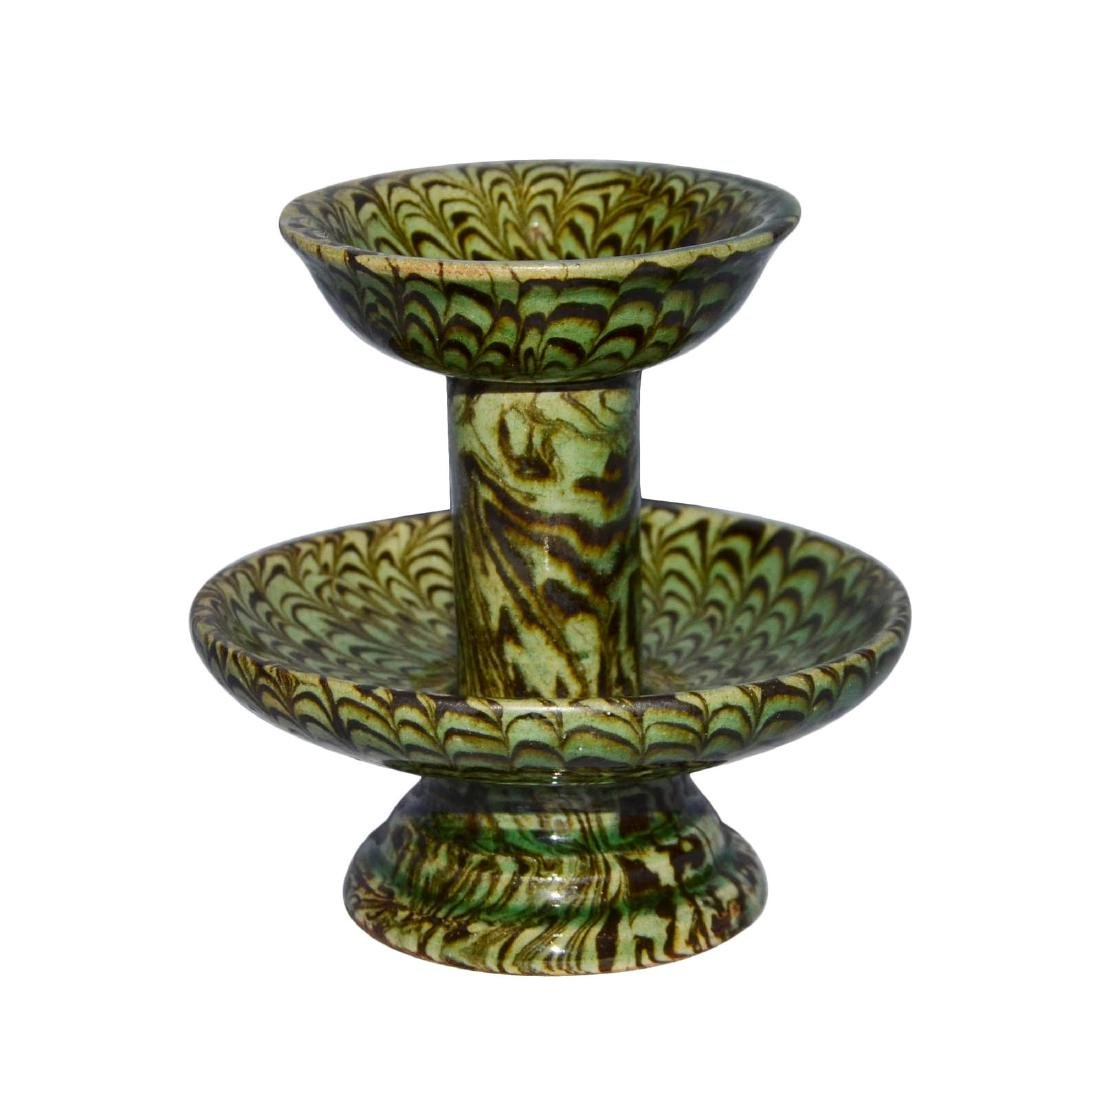 Song, A Rare Green-Glazed Marbled Pottery Lamp with - 2